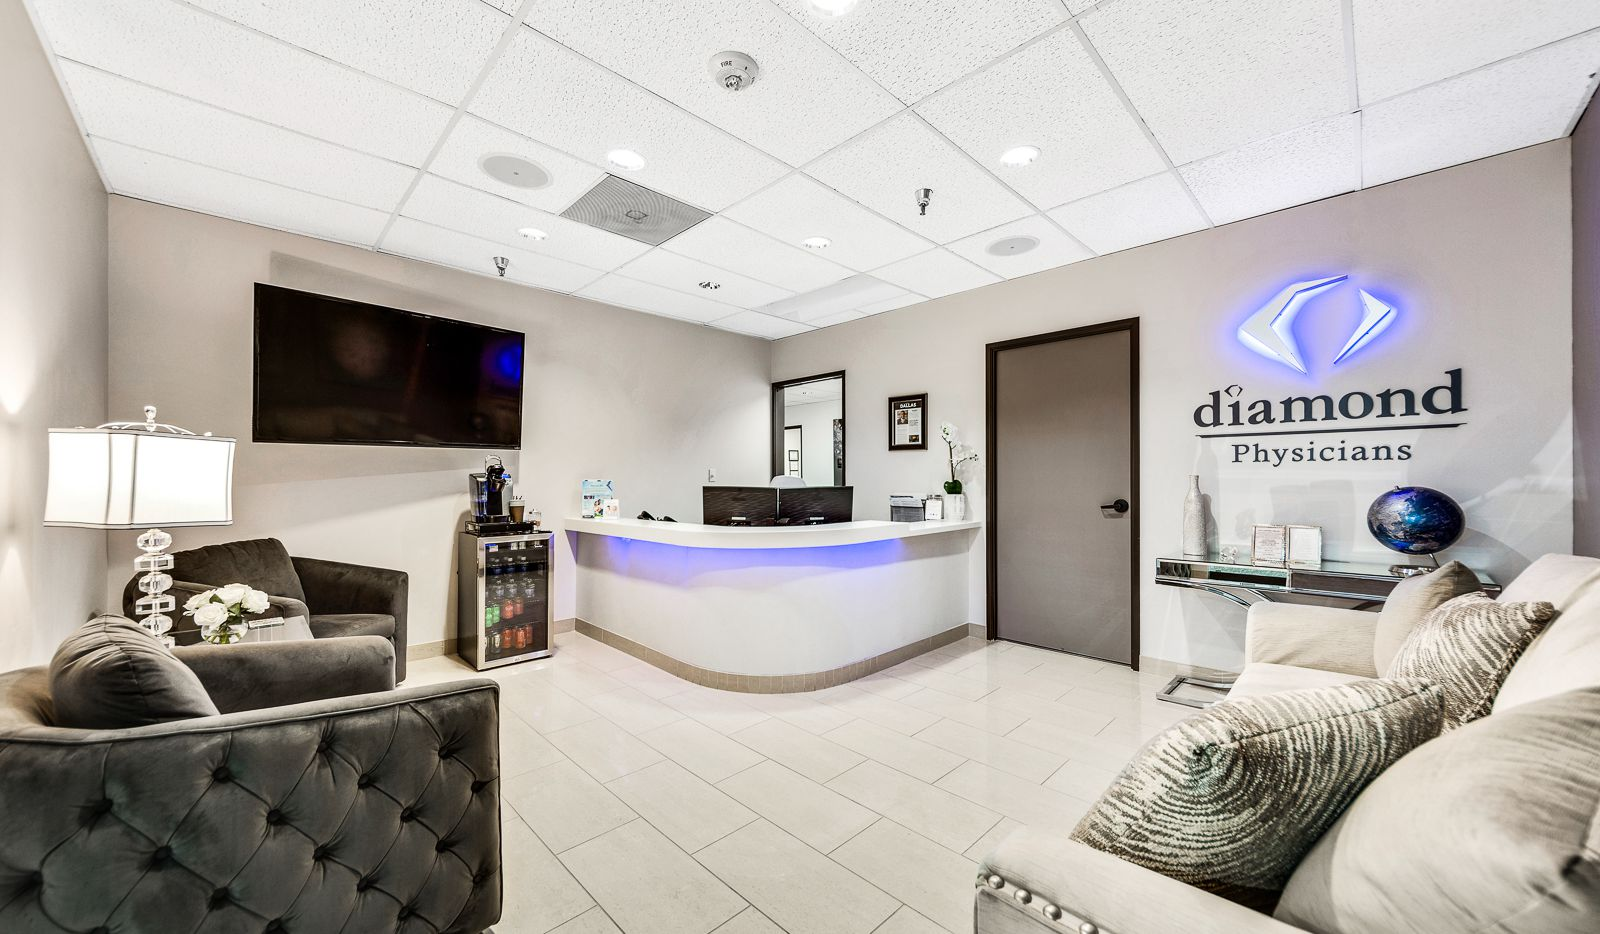 The offices of Diamond Physicians in Dallas. The health professionals there are helping administer COVID-19 antigen testing to MLB teams.